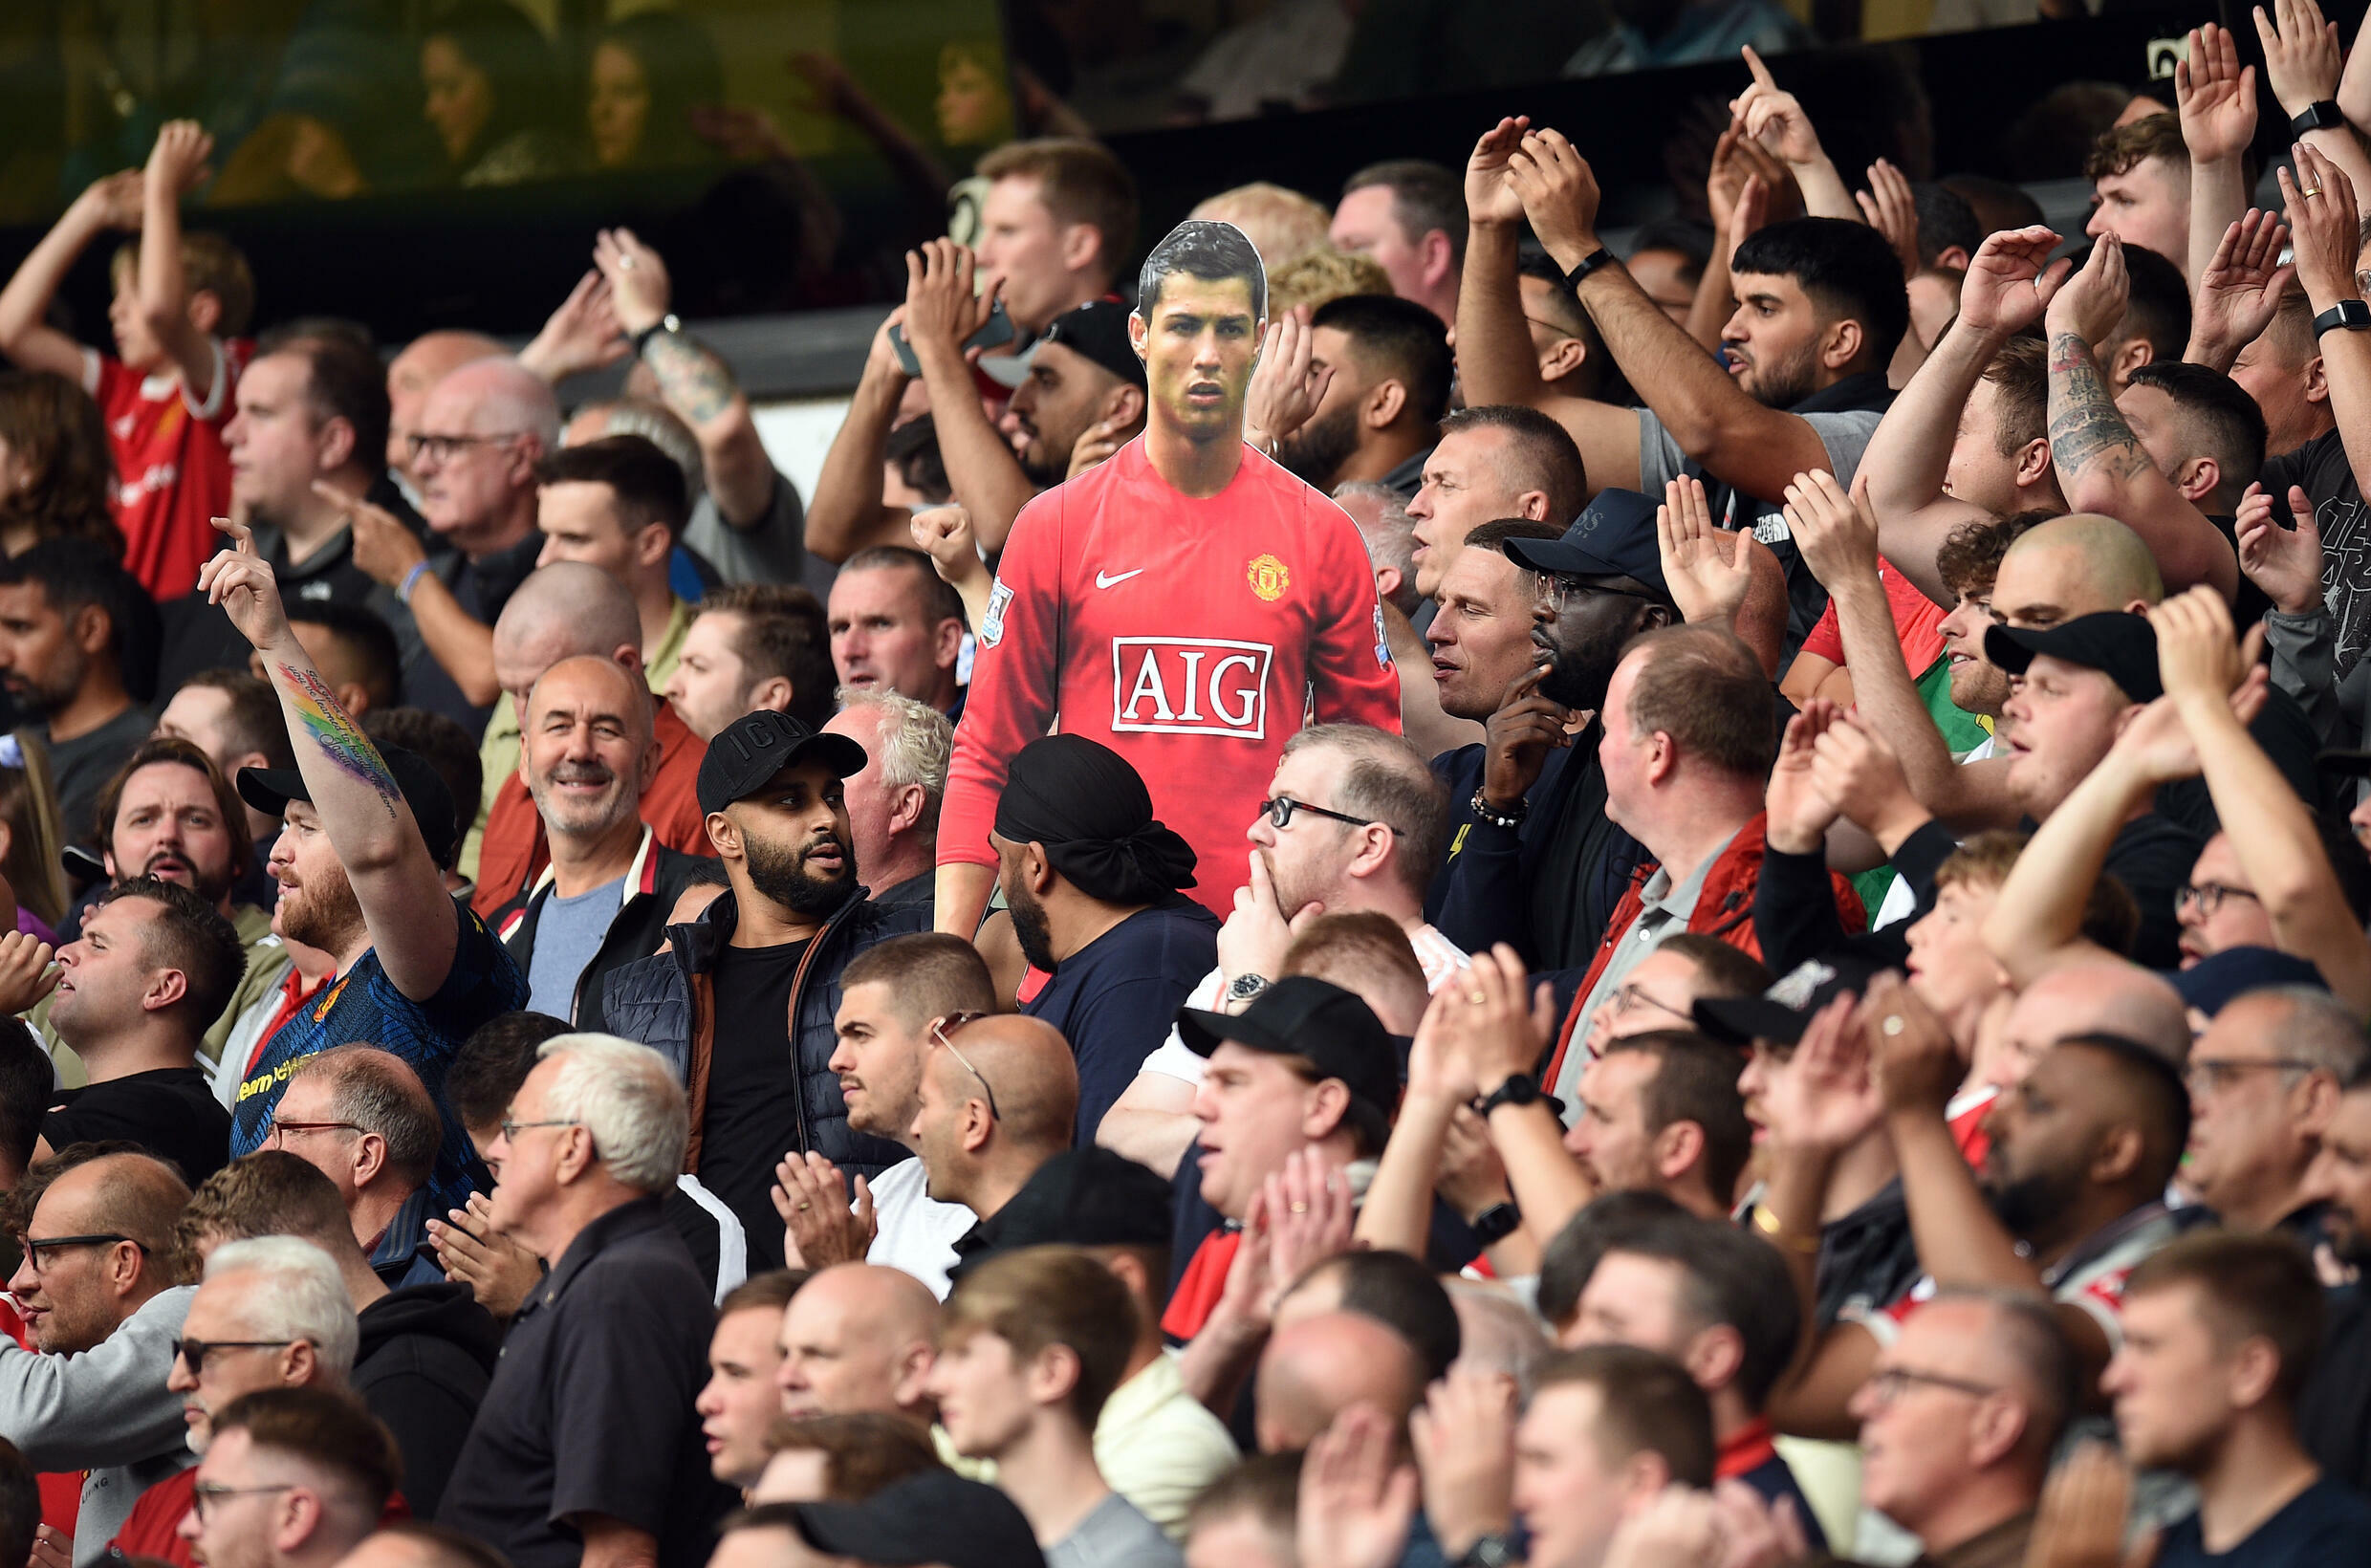 Manchester United fans held up a cardboard cut out of Cristiano Ronaldo in a 1-0 win at Wolves